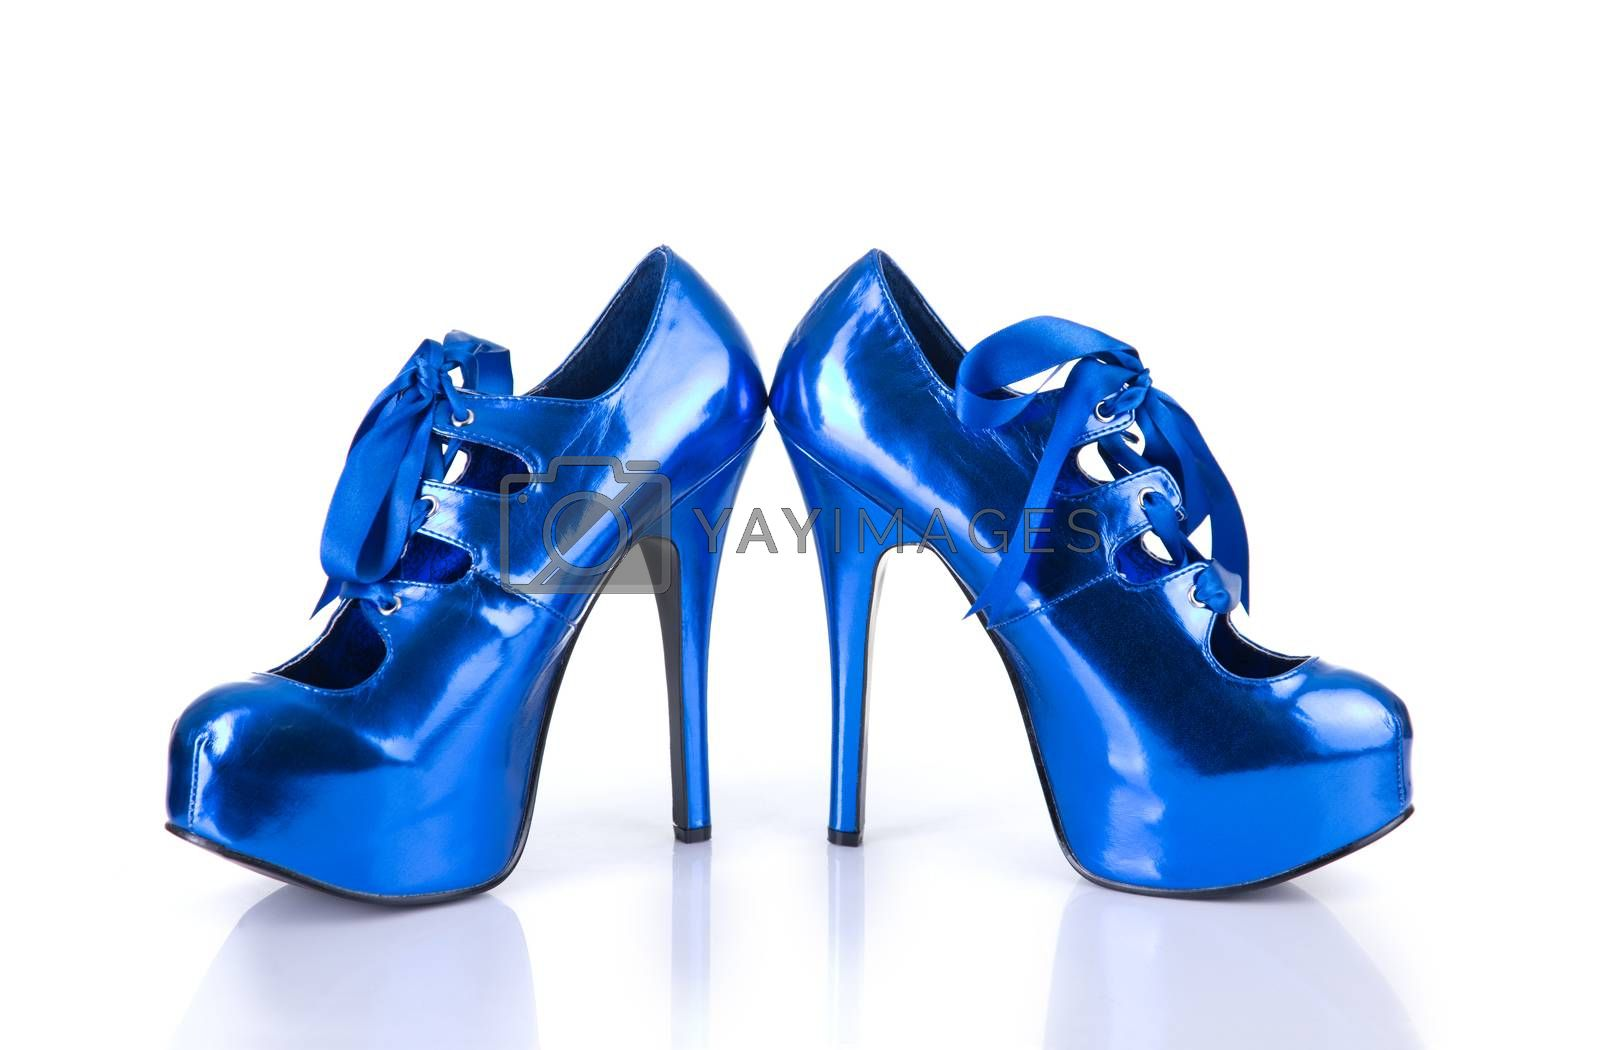 Elegant metallic blue female shoes, isolated on white background with natural reflection